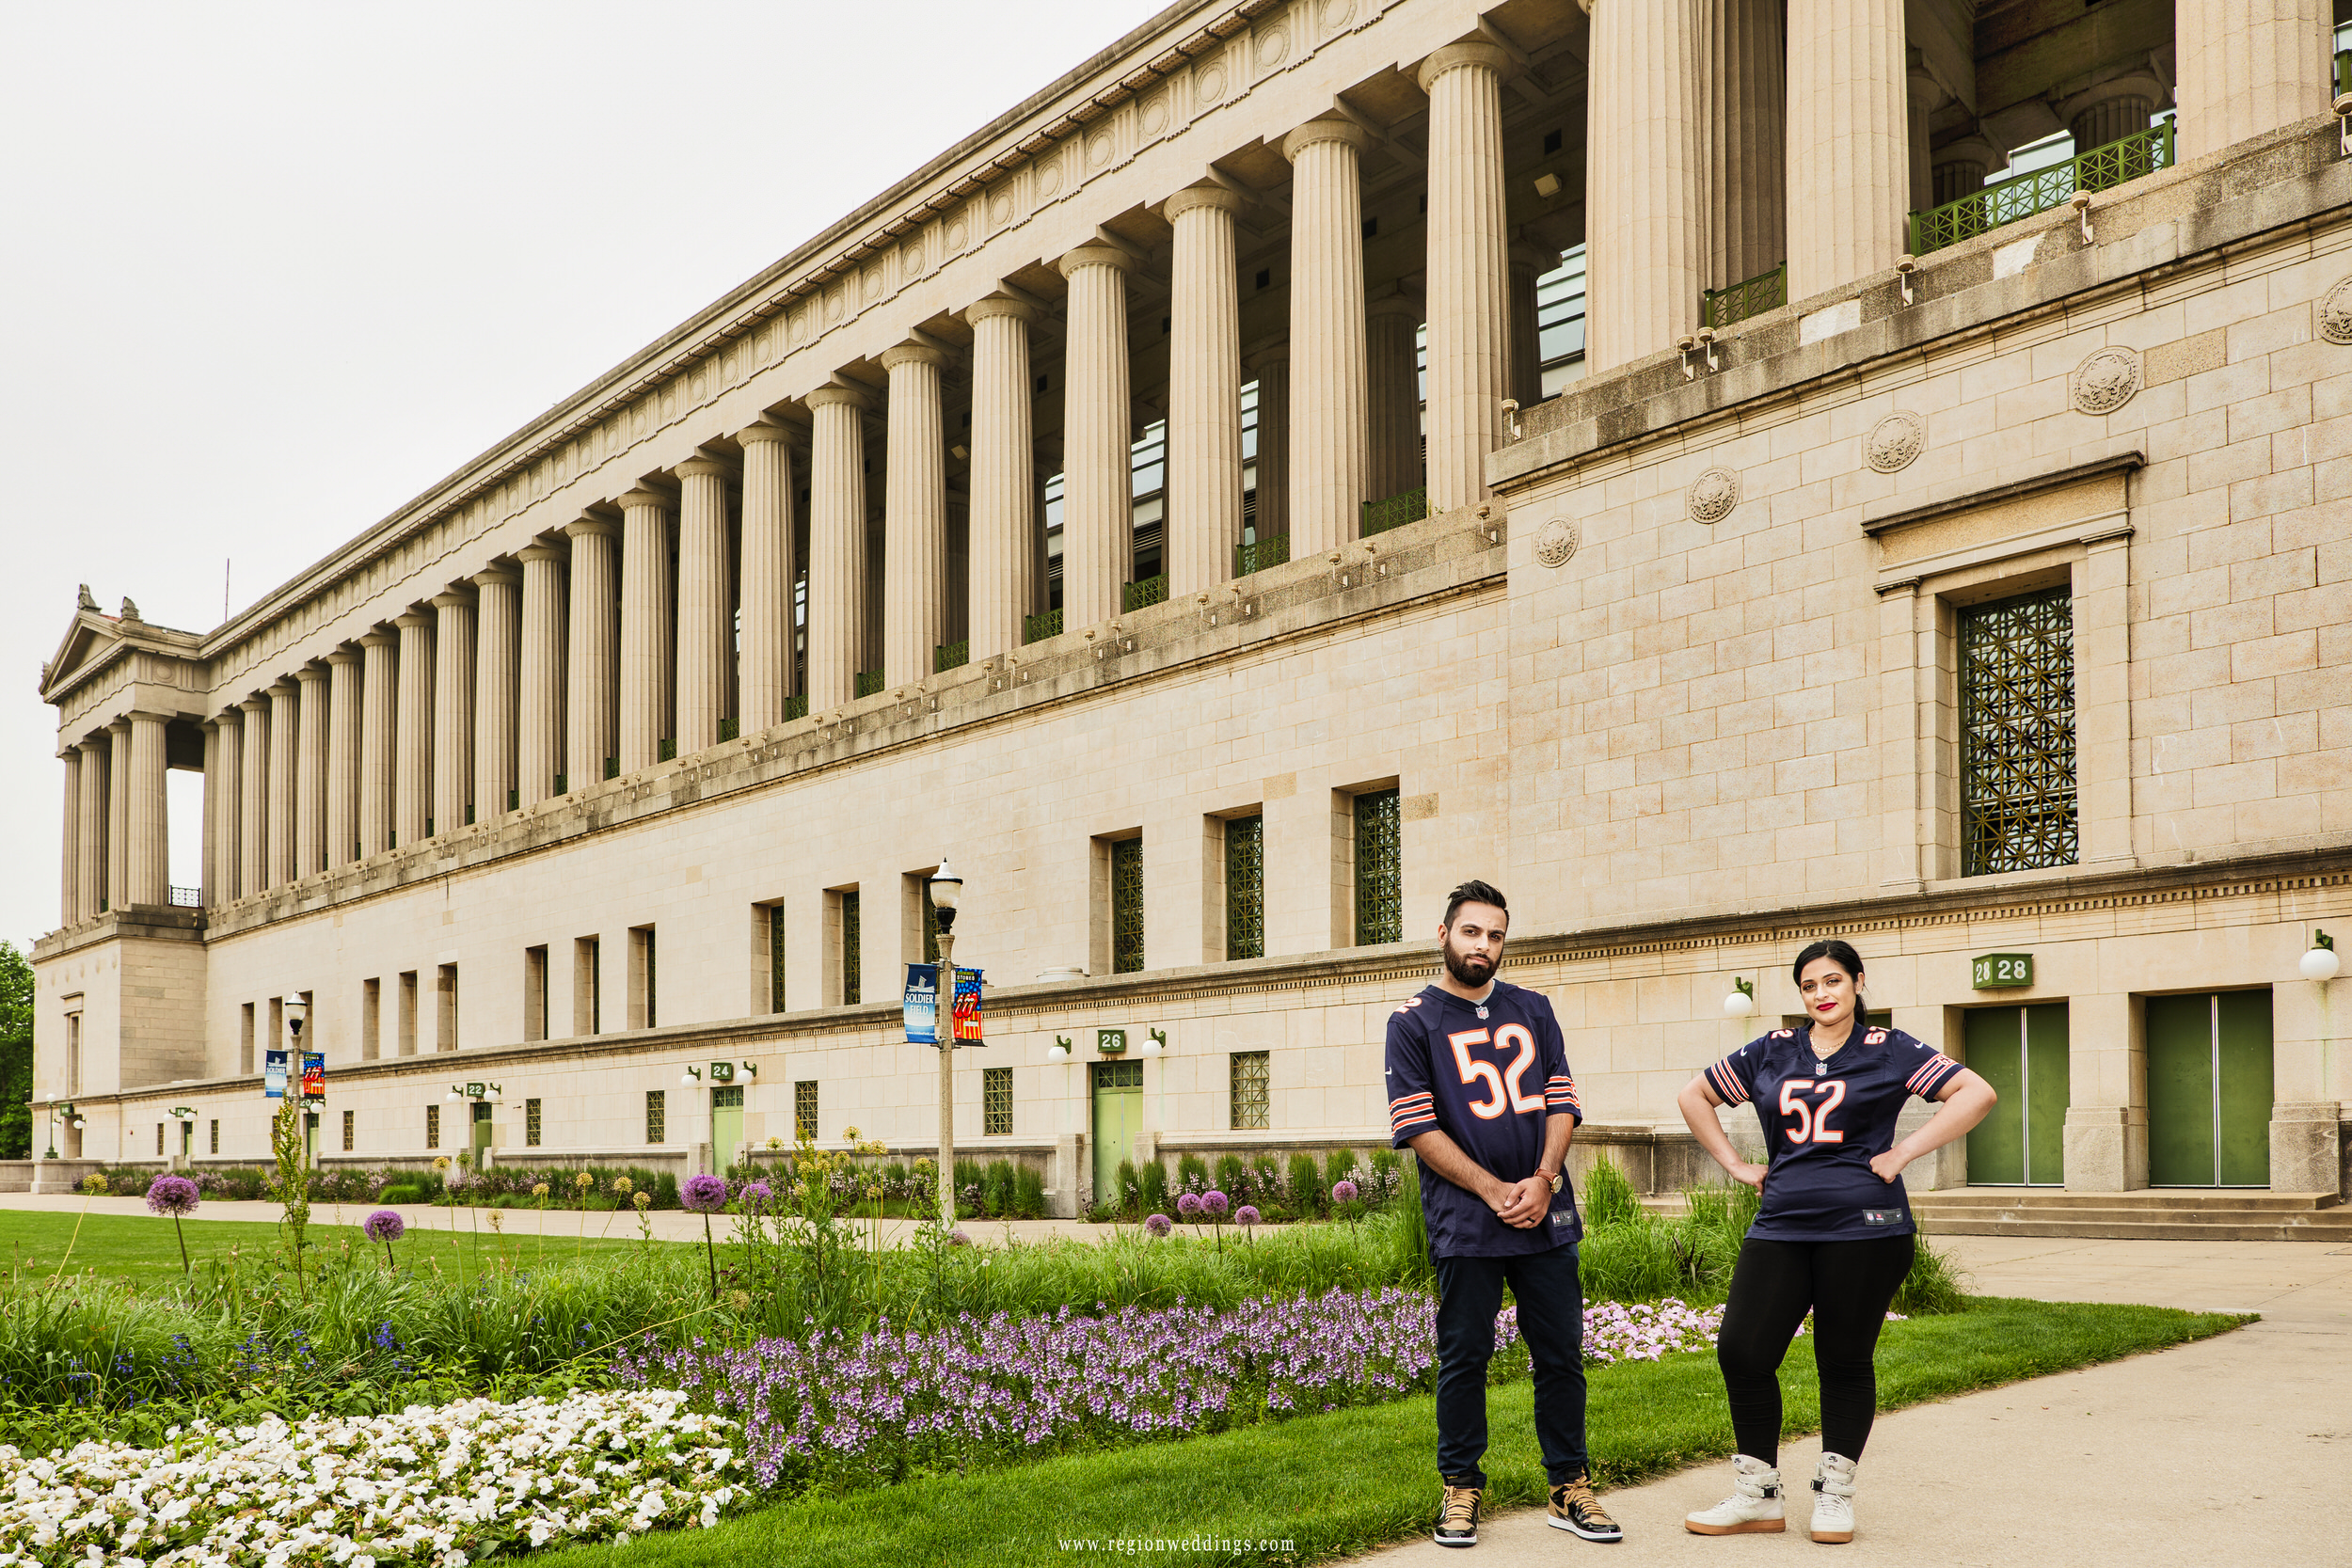 An engagement photo in Khalil Mack jerseys in front of Soldier Field.